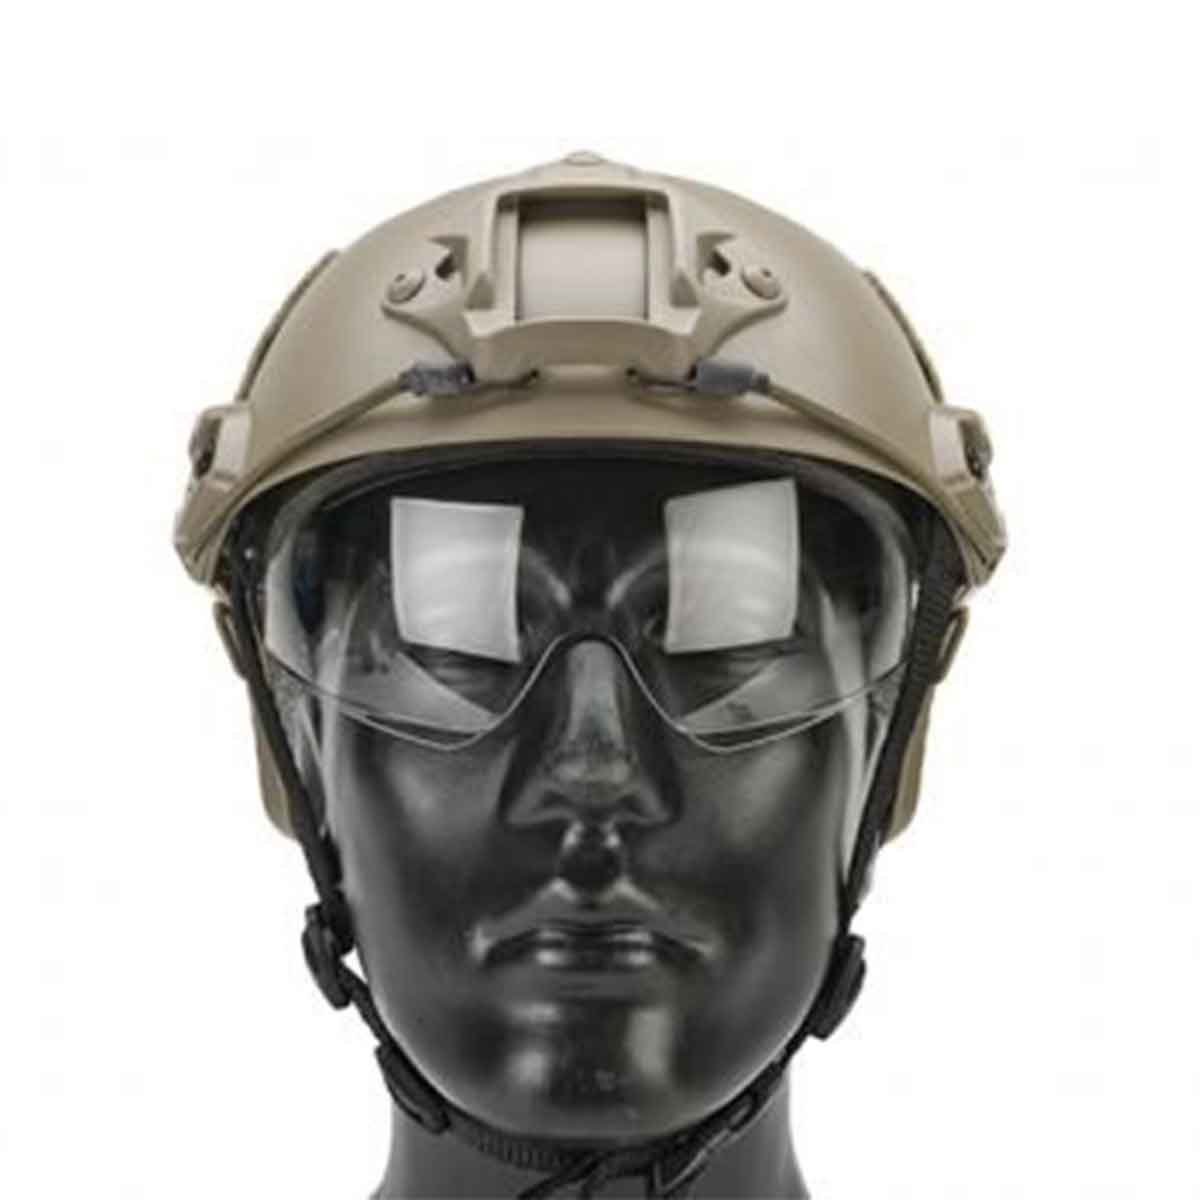 Capacete Tático Recreativo Emerson Gear c/ Lente Flip Down - Tan